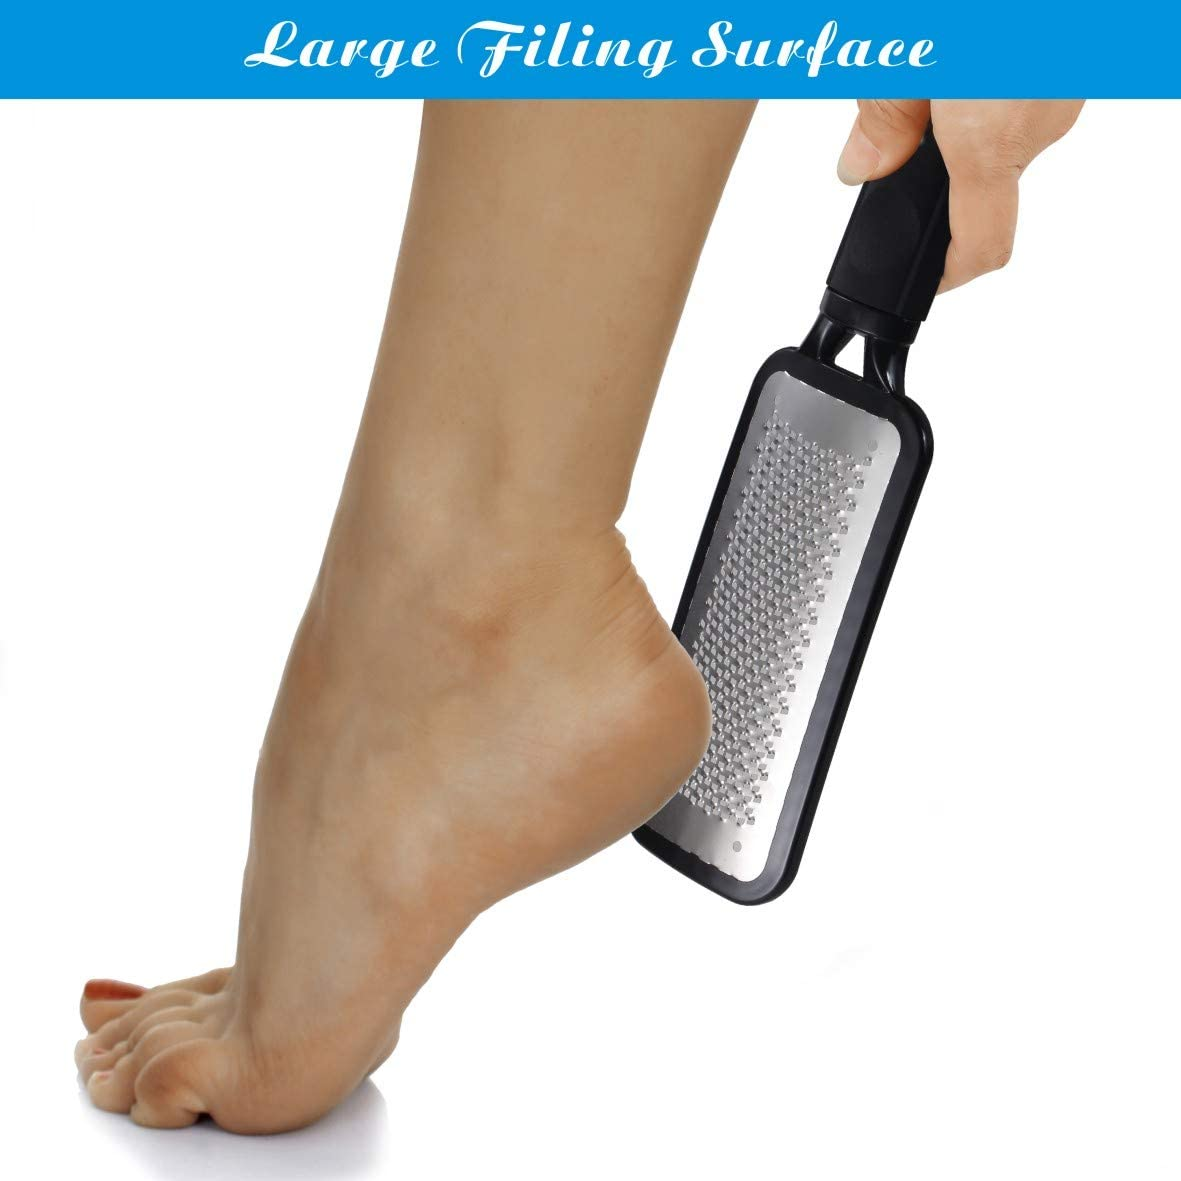 Colossal Pedicure Rasp Foot File, Professional Foot Care Pedicure Stainless Steel File to Removes Hard Skin, Can Be Used On Both Dry and Wet Feet: Health & Personal Care